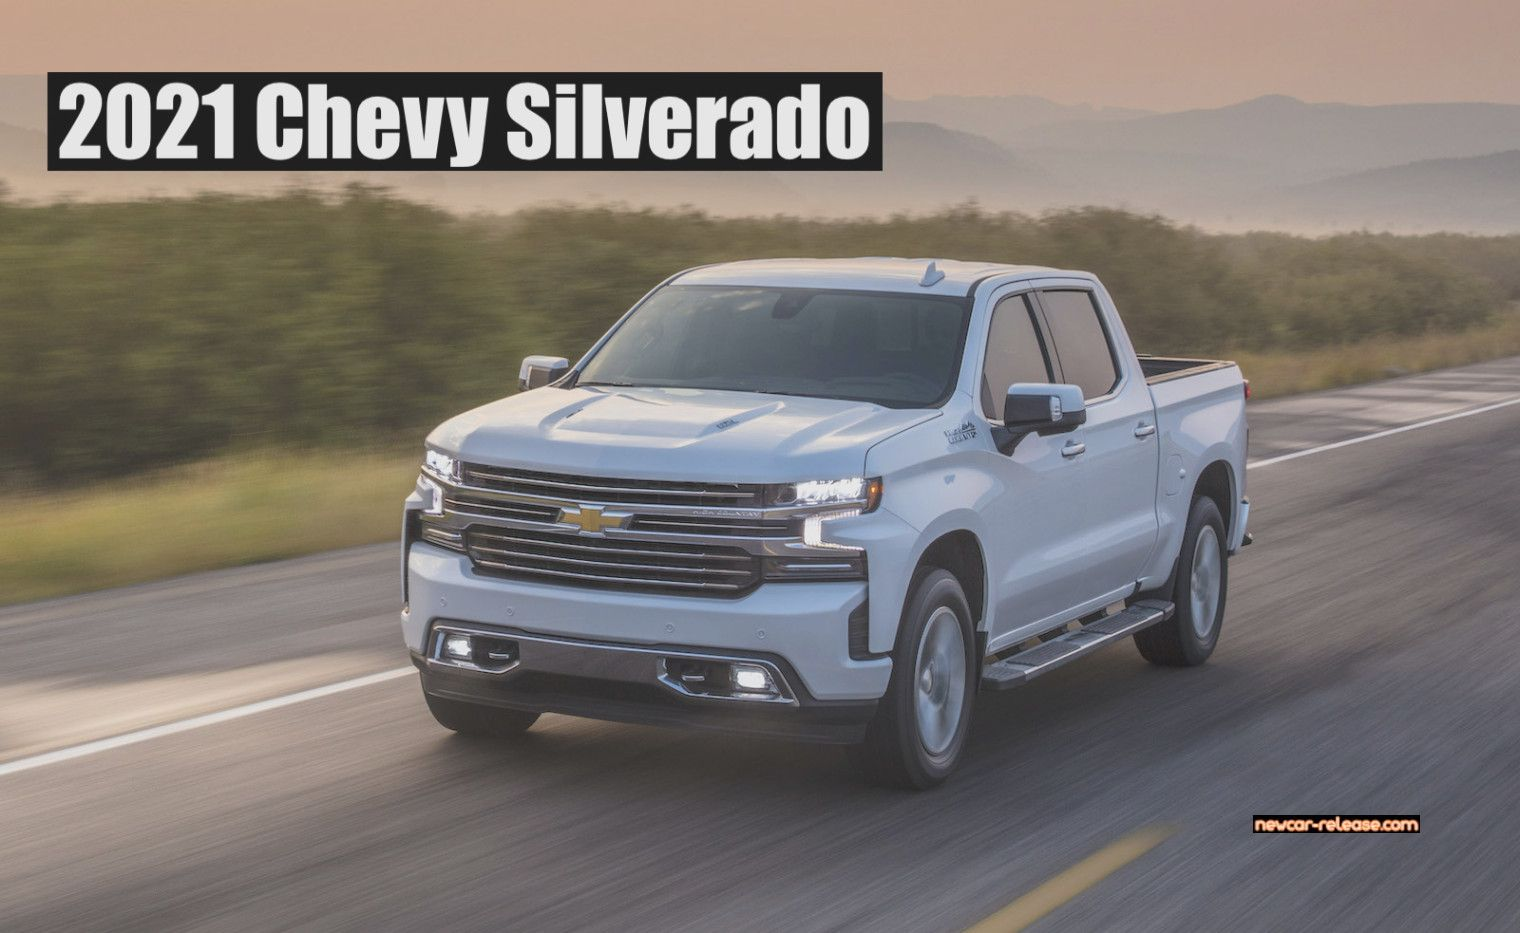 16 Chevy Silverado 16 Offers New Packages But Several 2021 Chevrolet Silverado 1500 Design And E In 2021 Chevy Silverado Chevrolet Silverado 1500 Silverado 1500